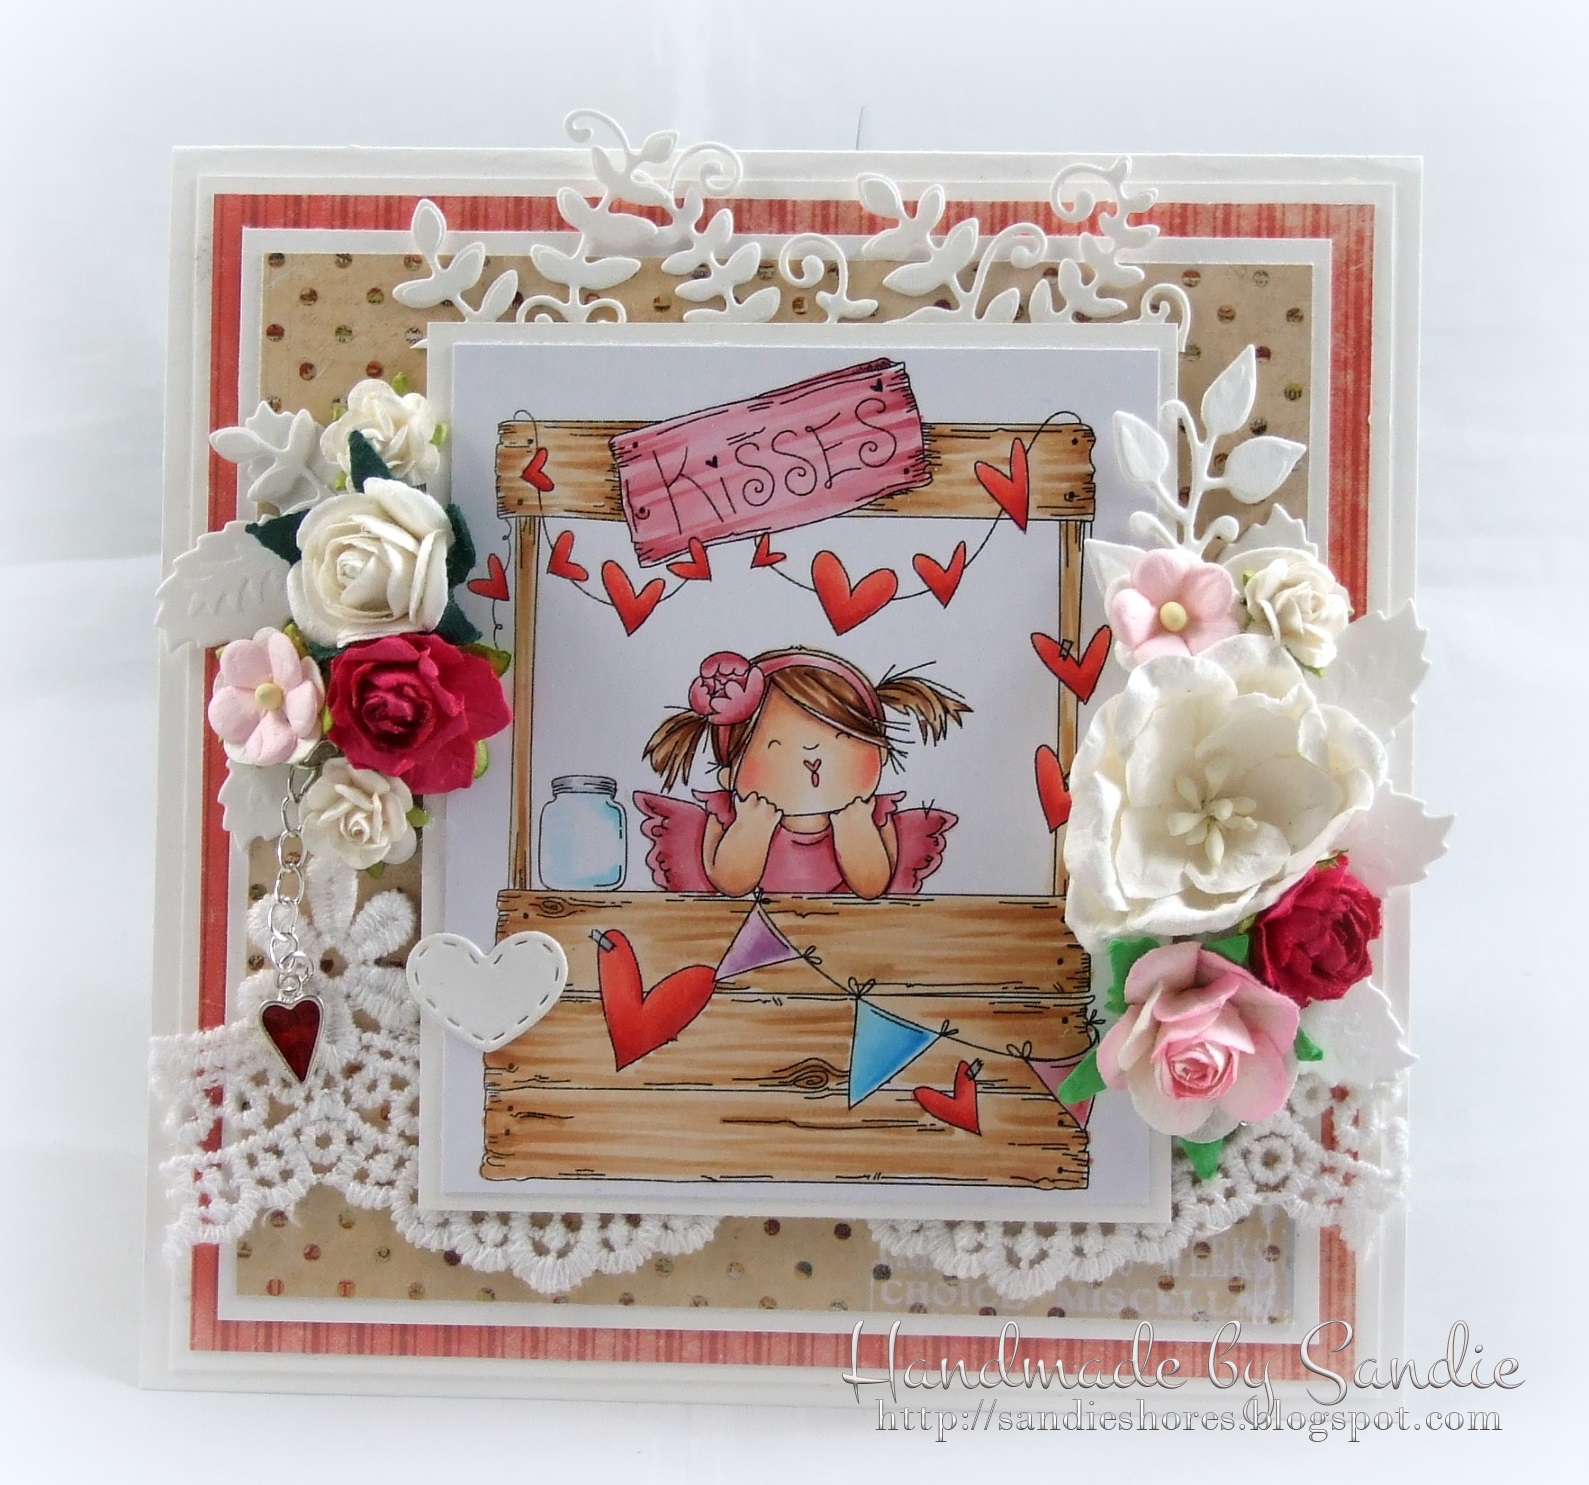 Stamping Bella JANUARY 2017 rubber stamp release- Kissing Booth SQUIDGIES card by Sandie Dunne